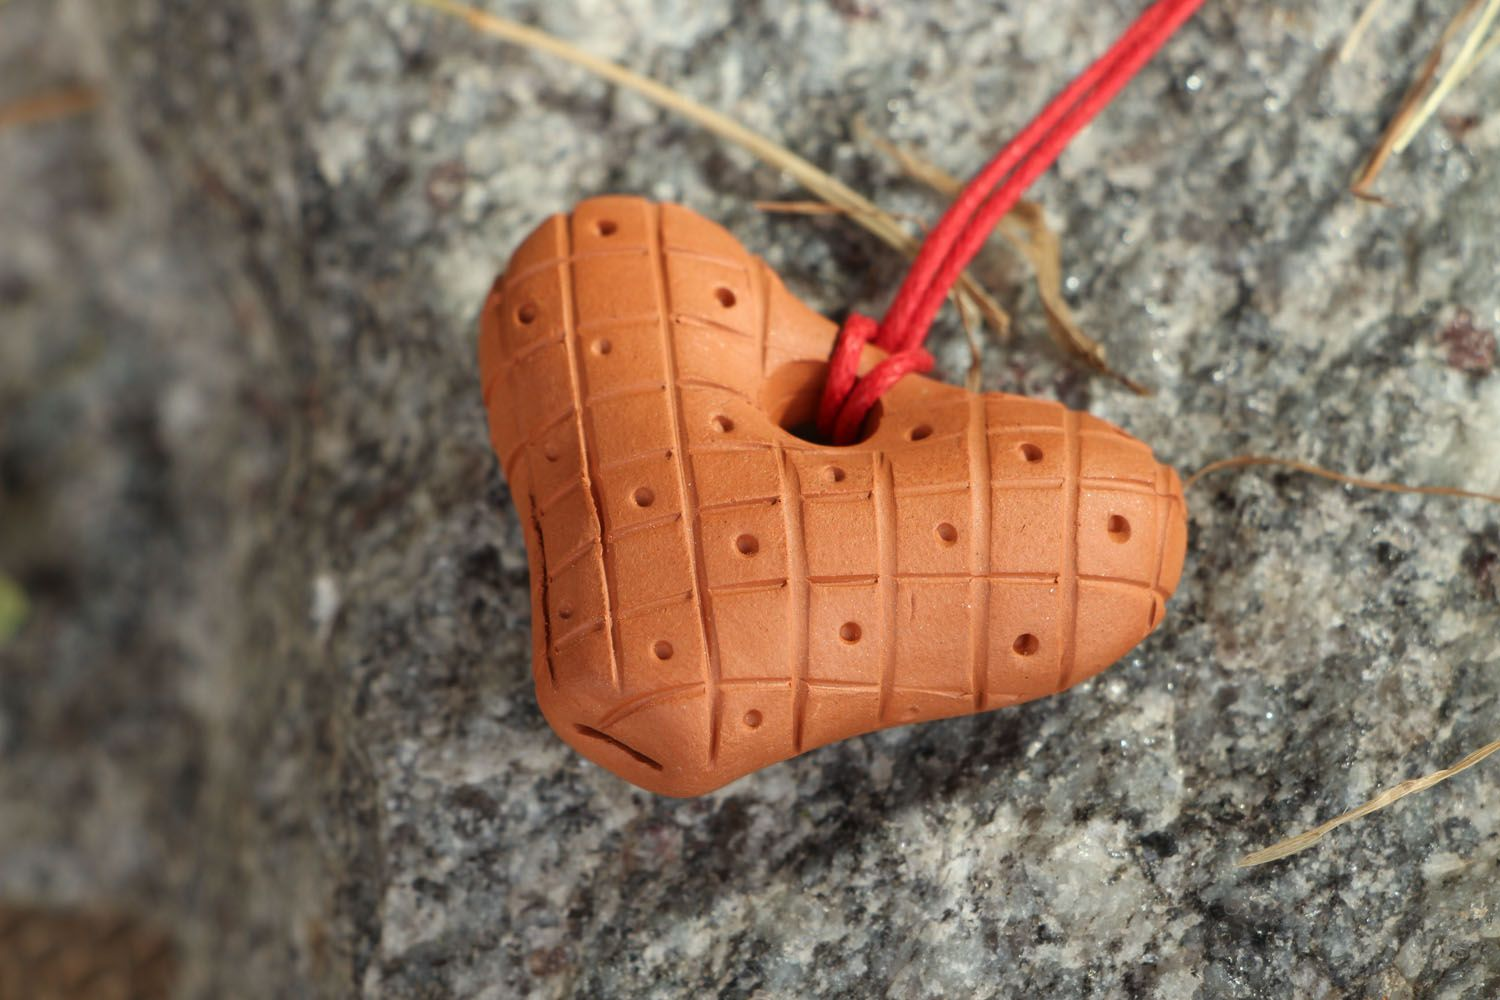 Clay penny whistle with a red cord photo 5